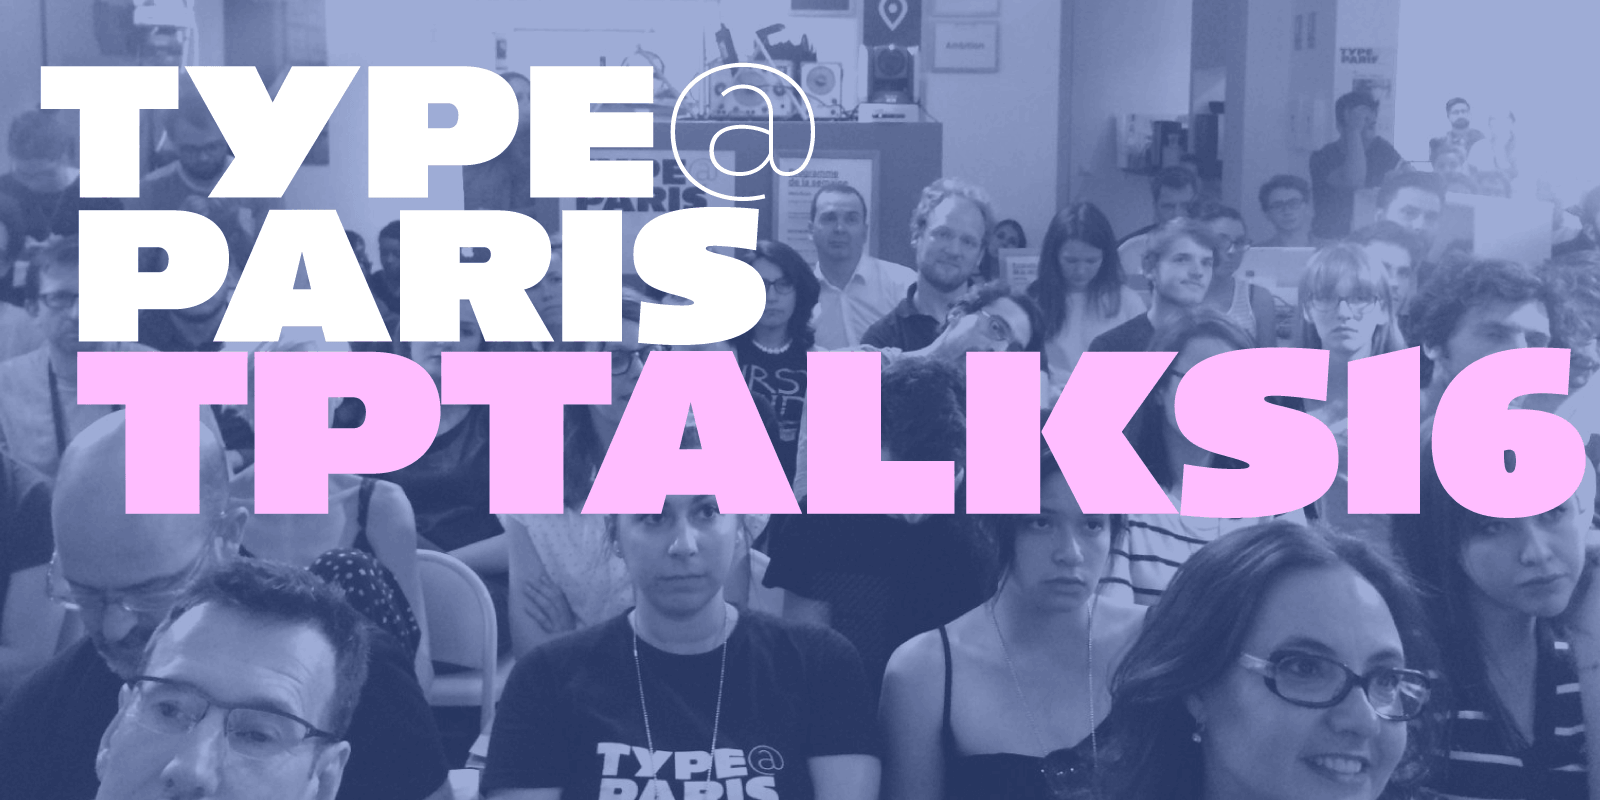 tptalks16 announced